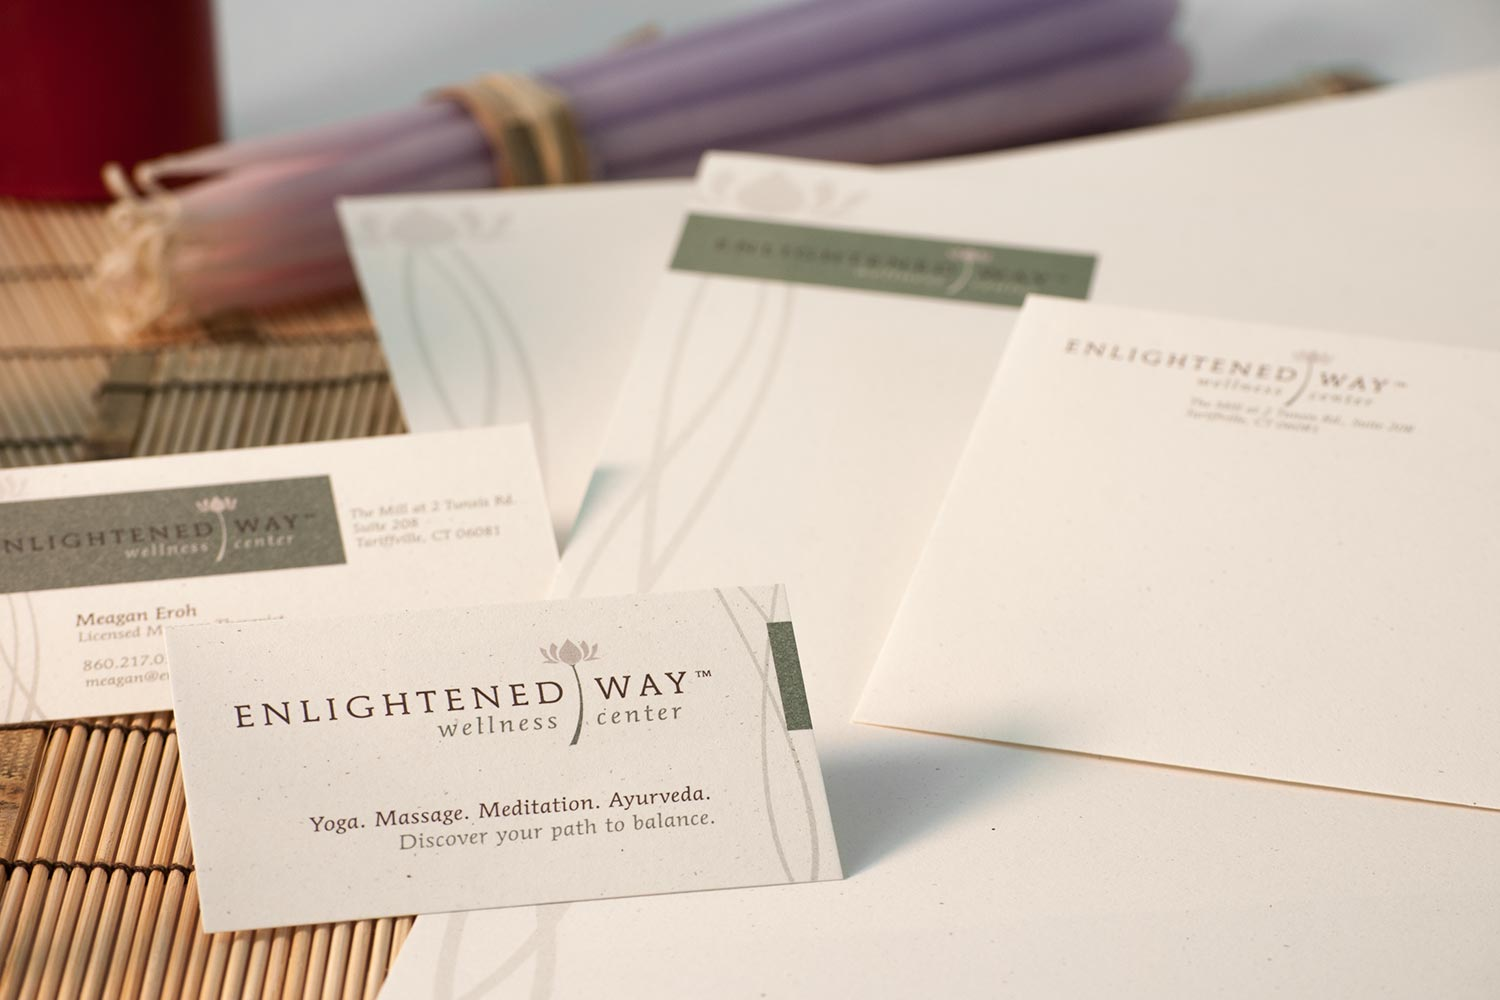 Enlightened Way Stationery